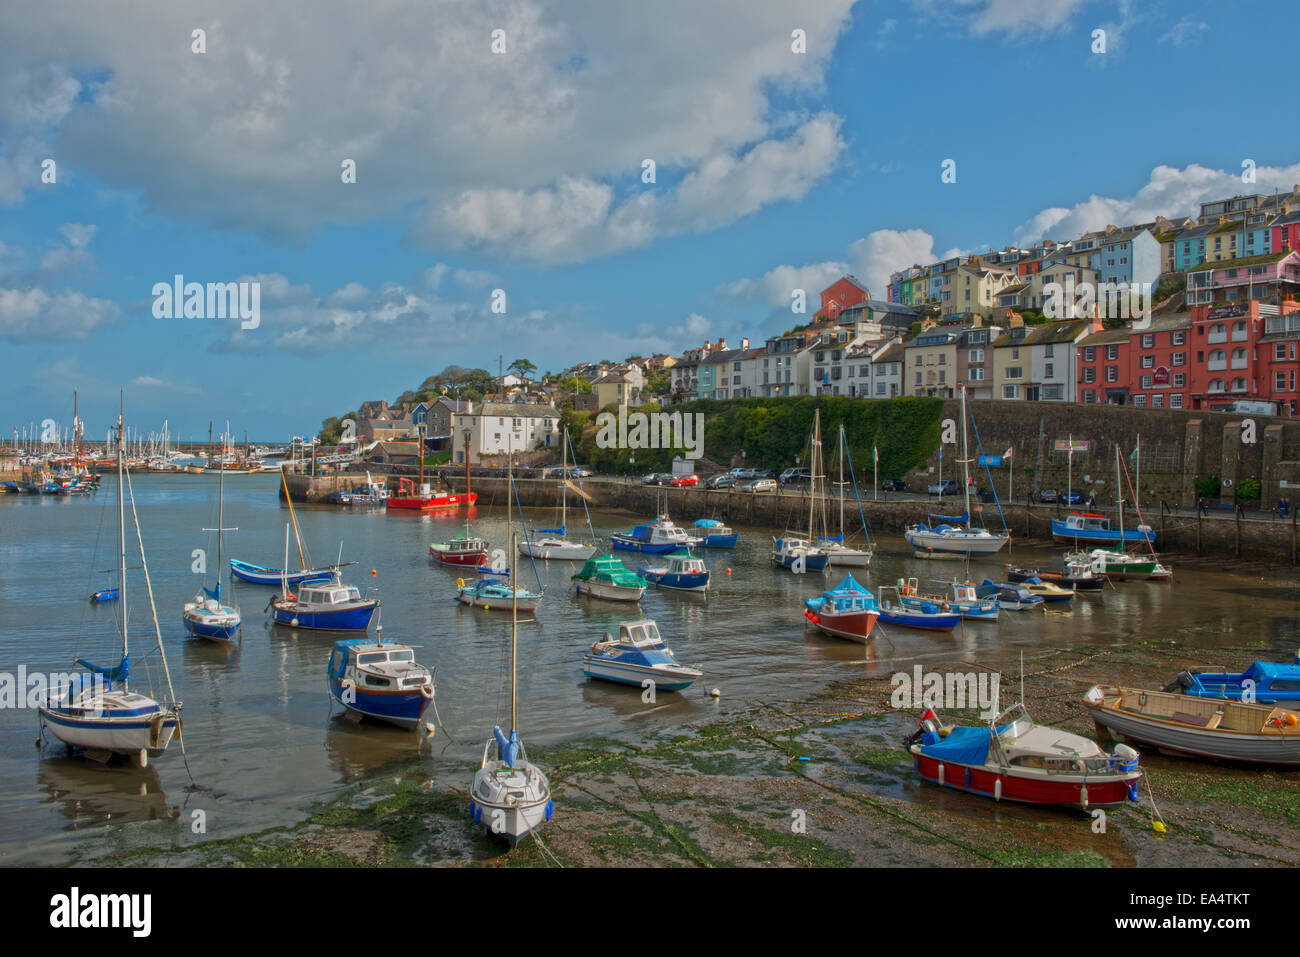 Port de Brixham, Devon, Torbay, Angleterre du Sud-Ouest, Royaume-Uni. Photo Stock